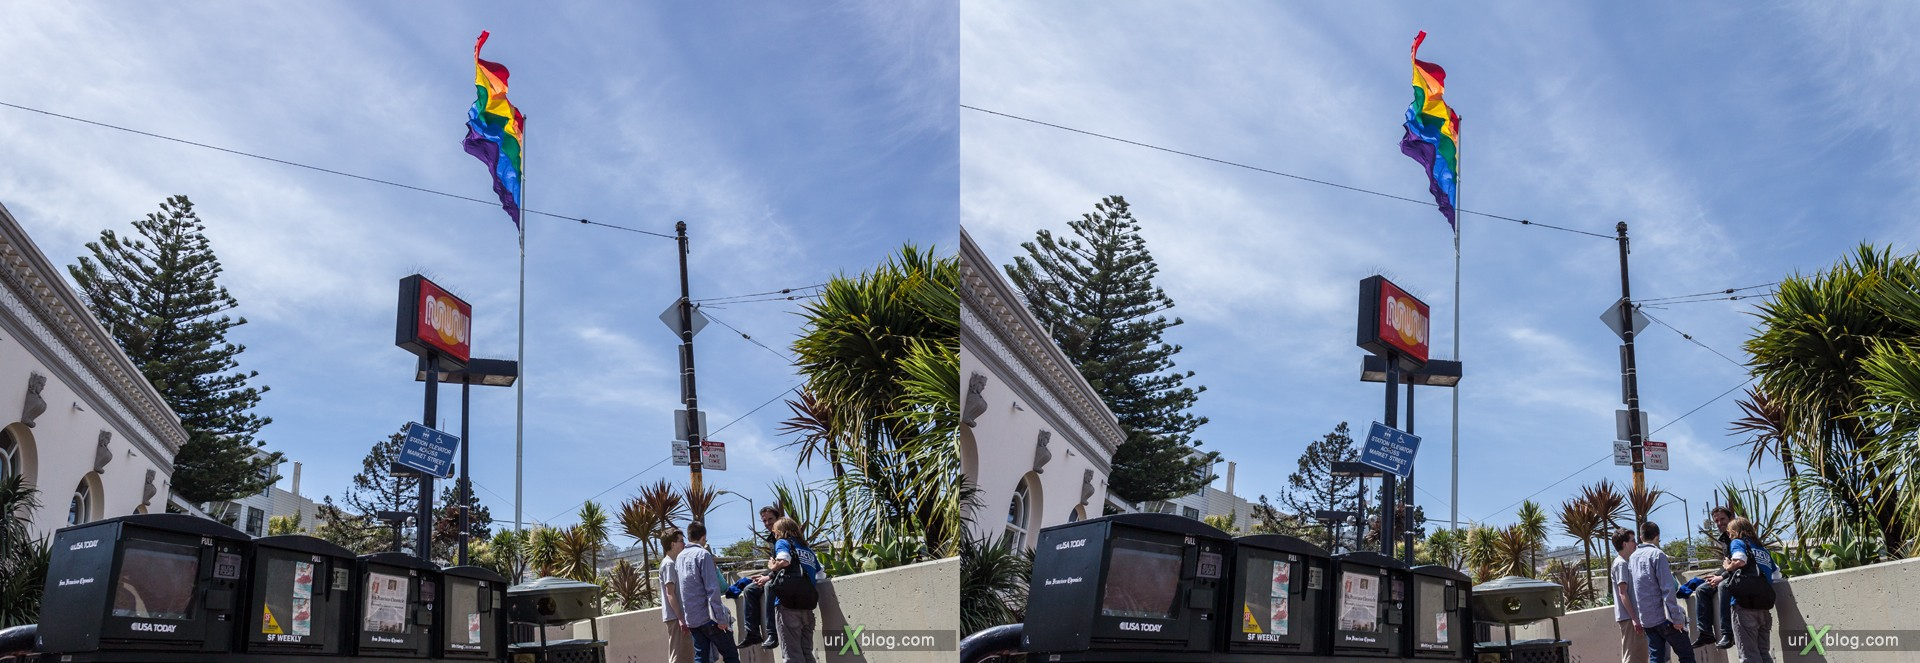 2013, Castro rainbow flag, Dolores Heights, San Francisco, USA, 3D, stereo pair, cross-eyed, crossview, cross view stereo pair, stereoscopic